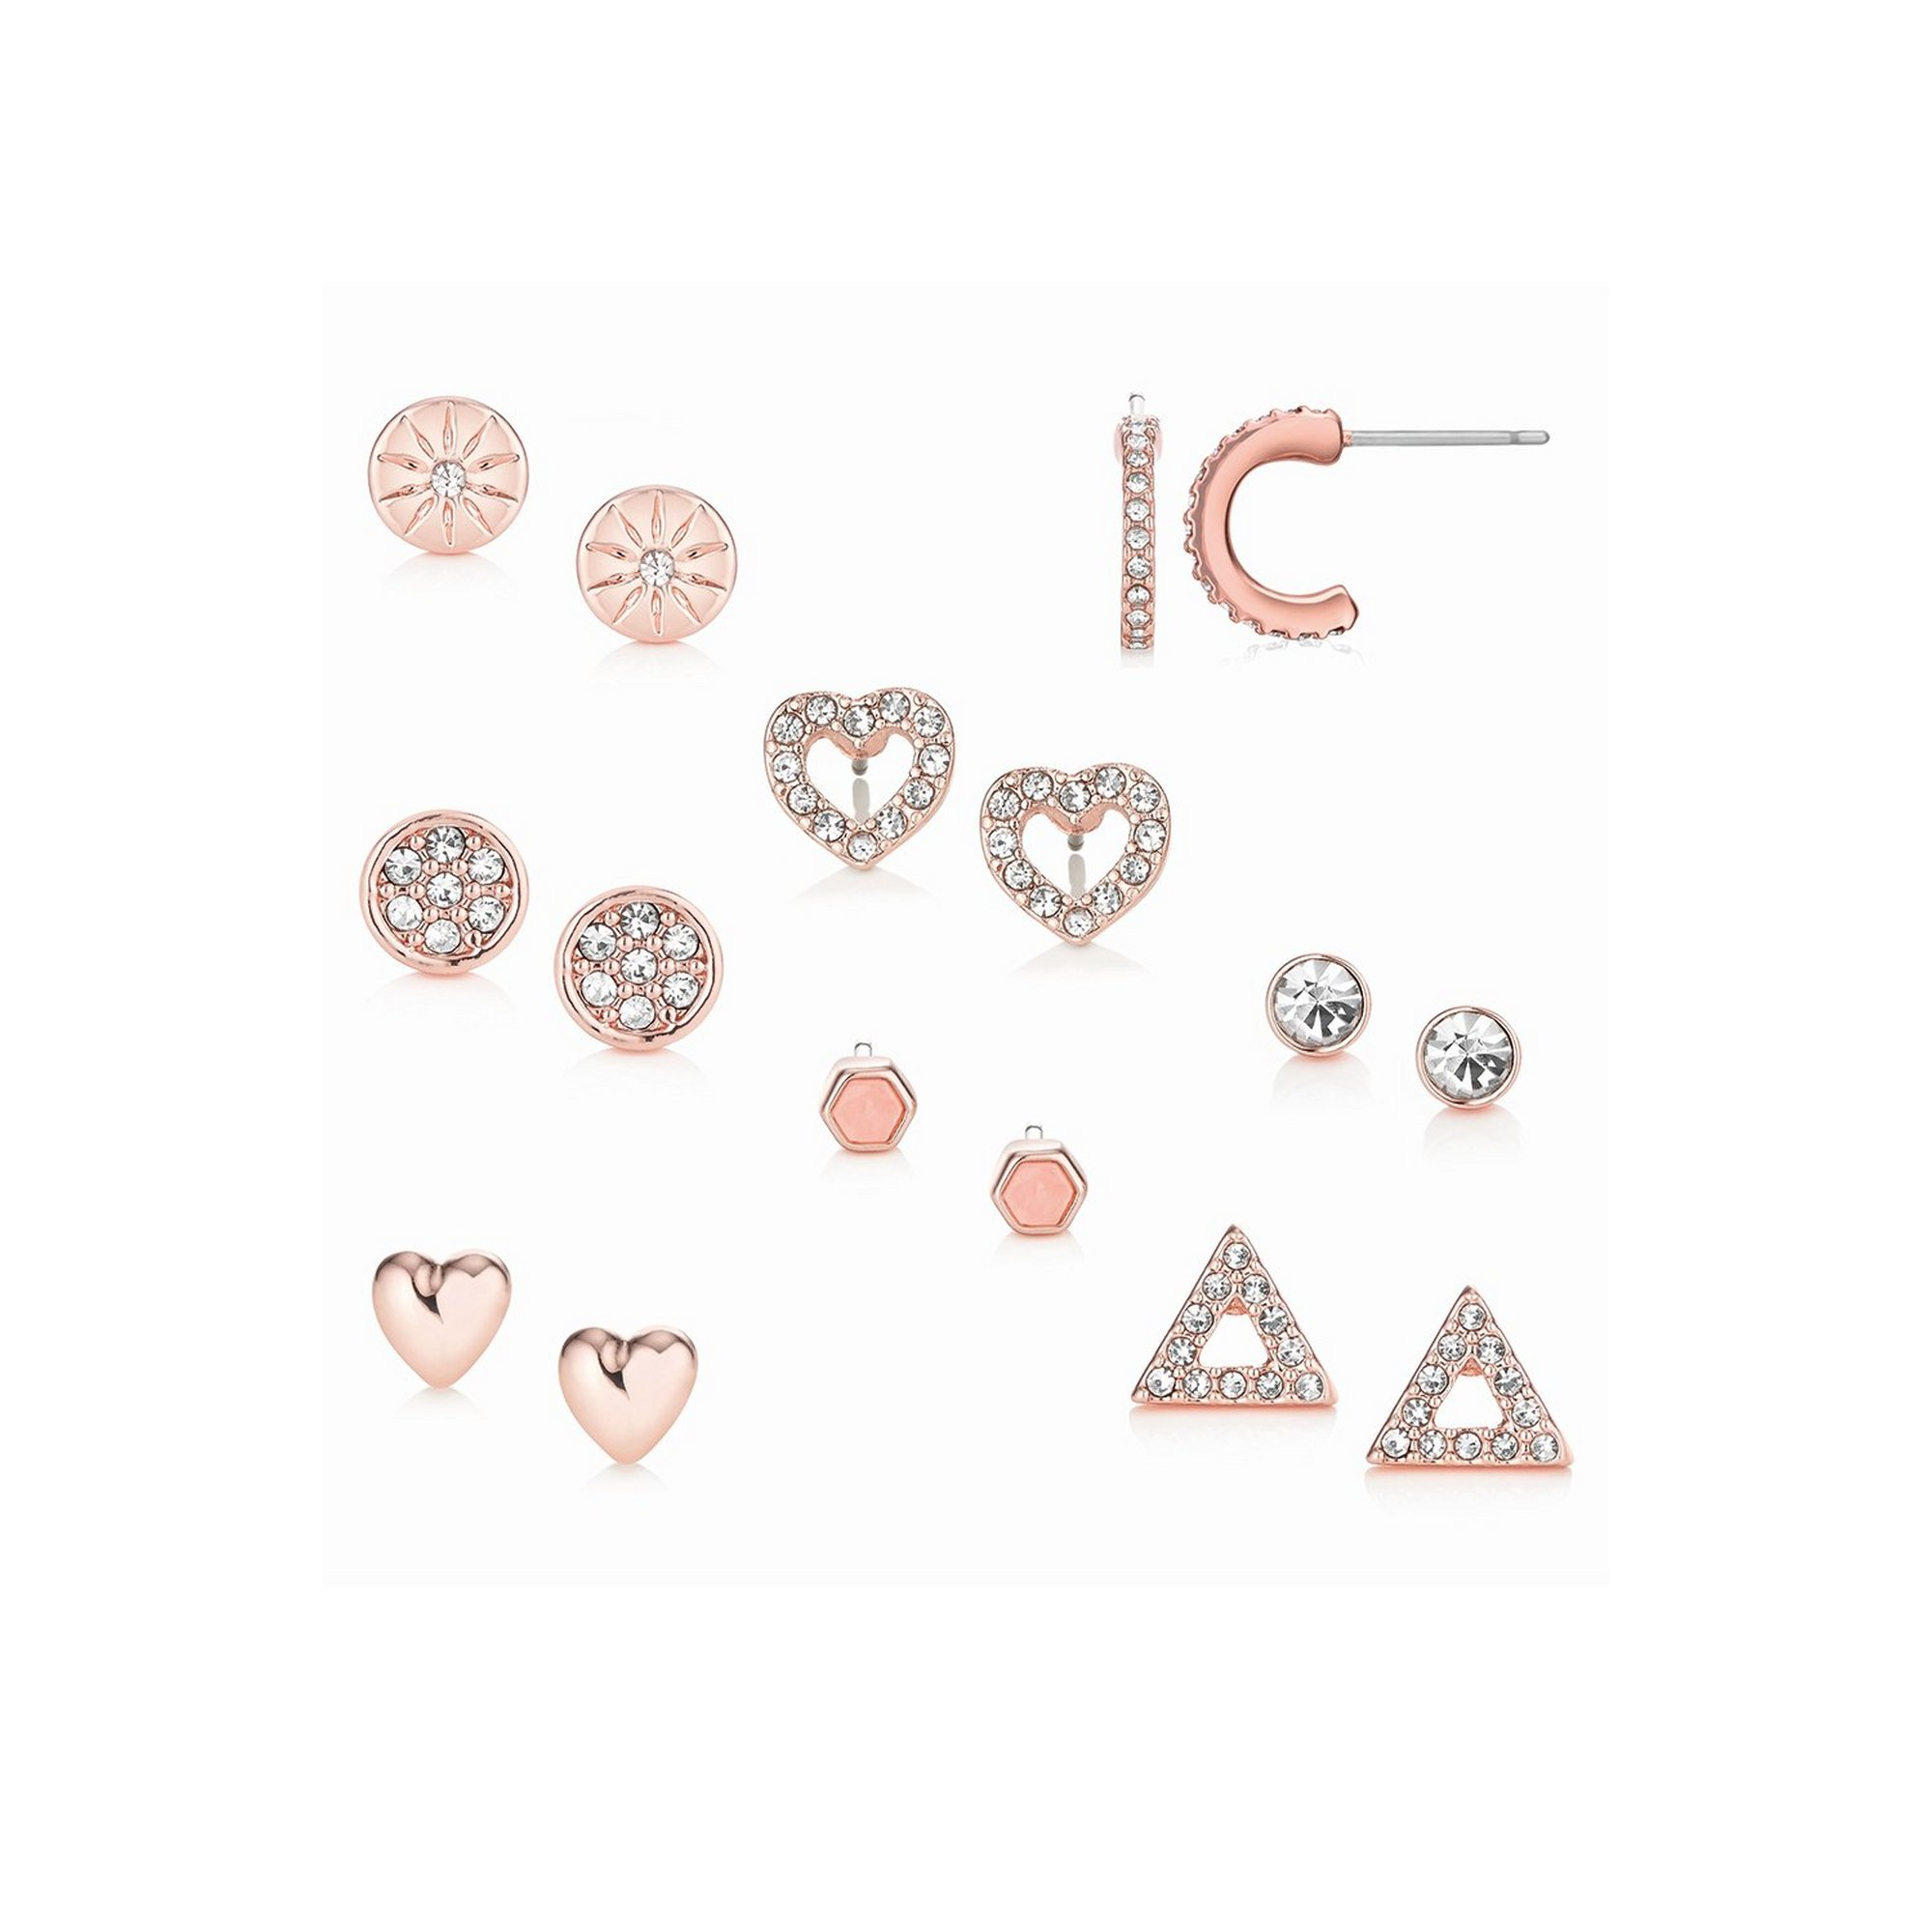 Image of Buckley London 8-Piece Rose Gold Earring Set